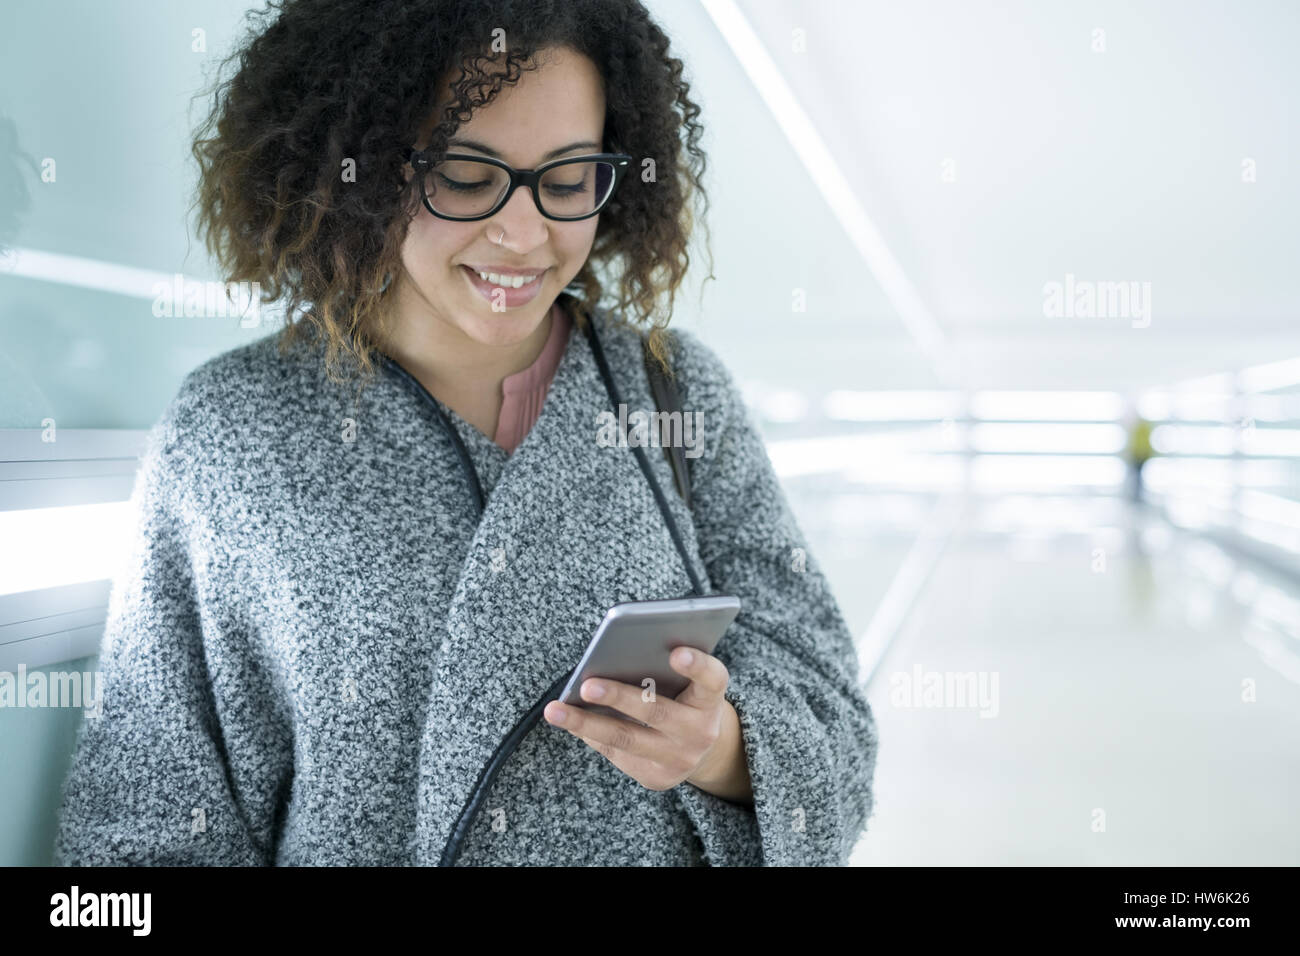 Afro american girl using a mobile phone - Stock Image